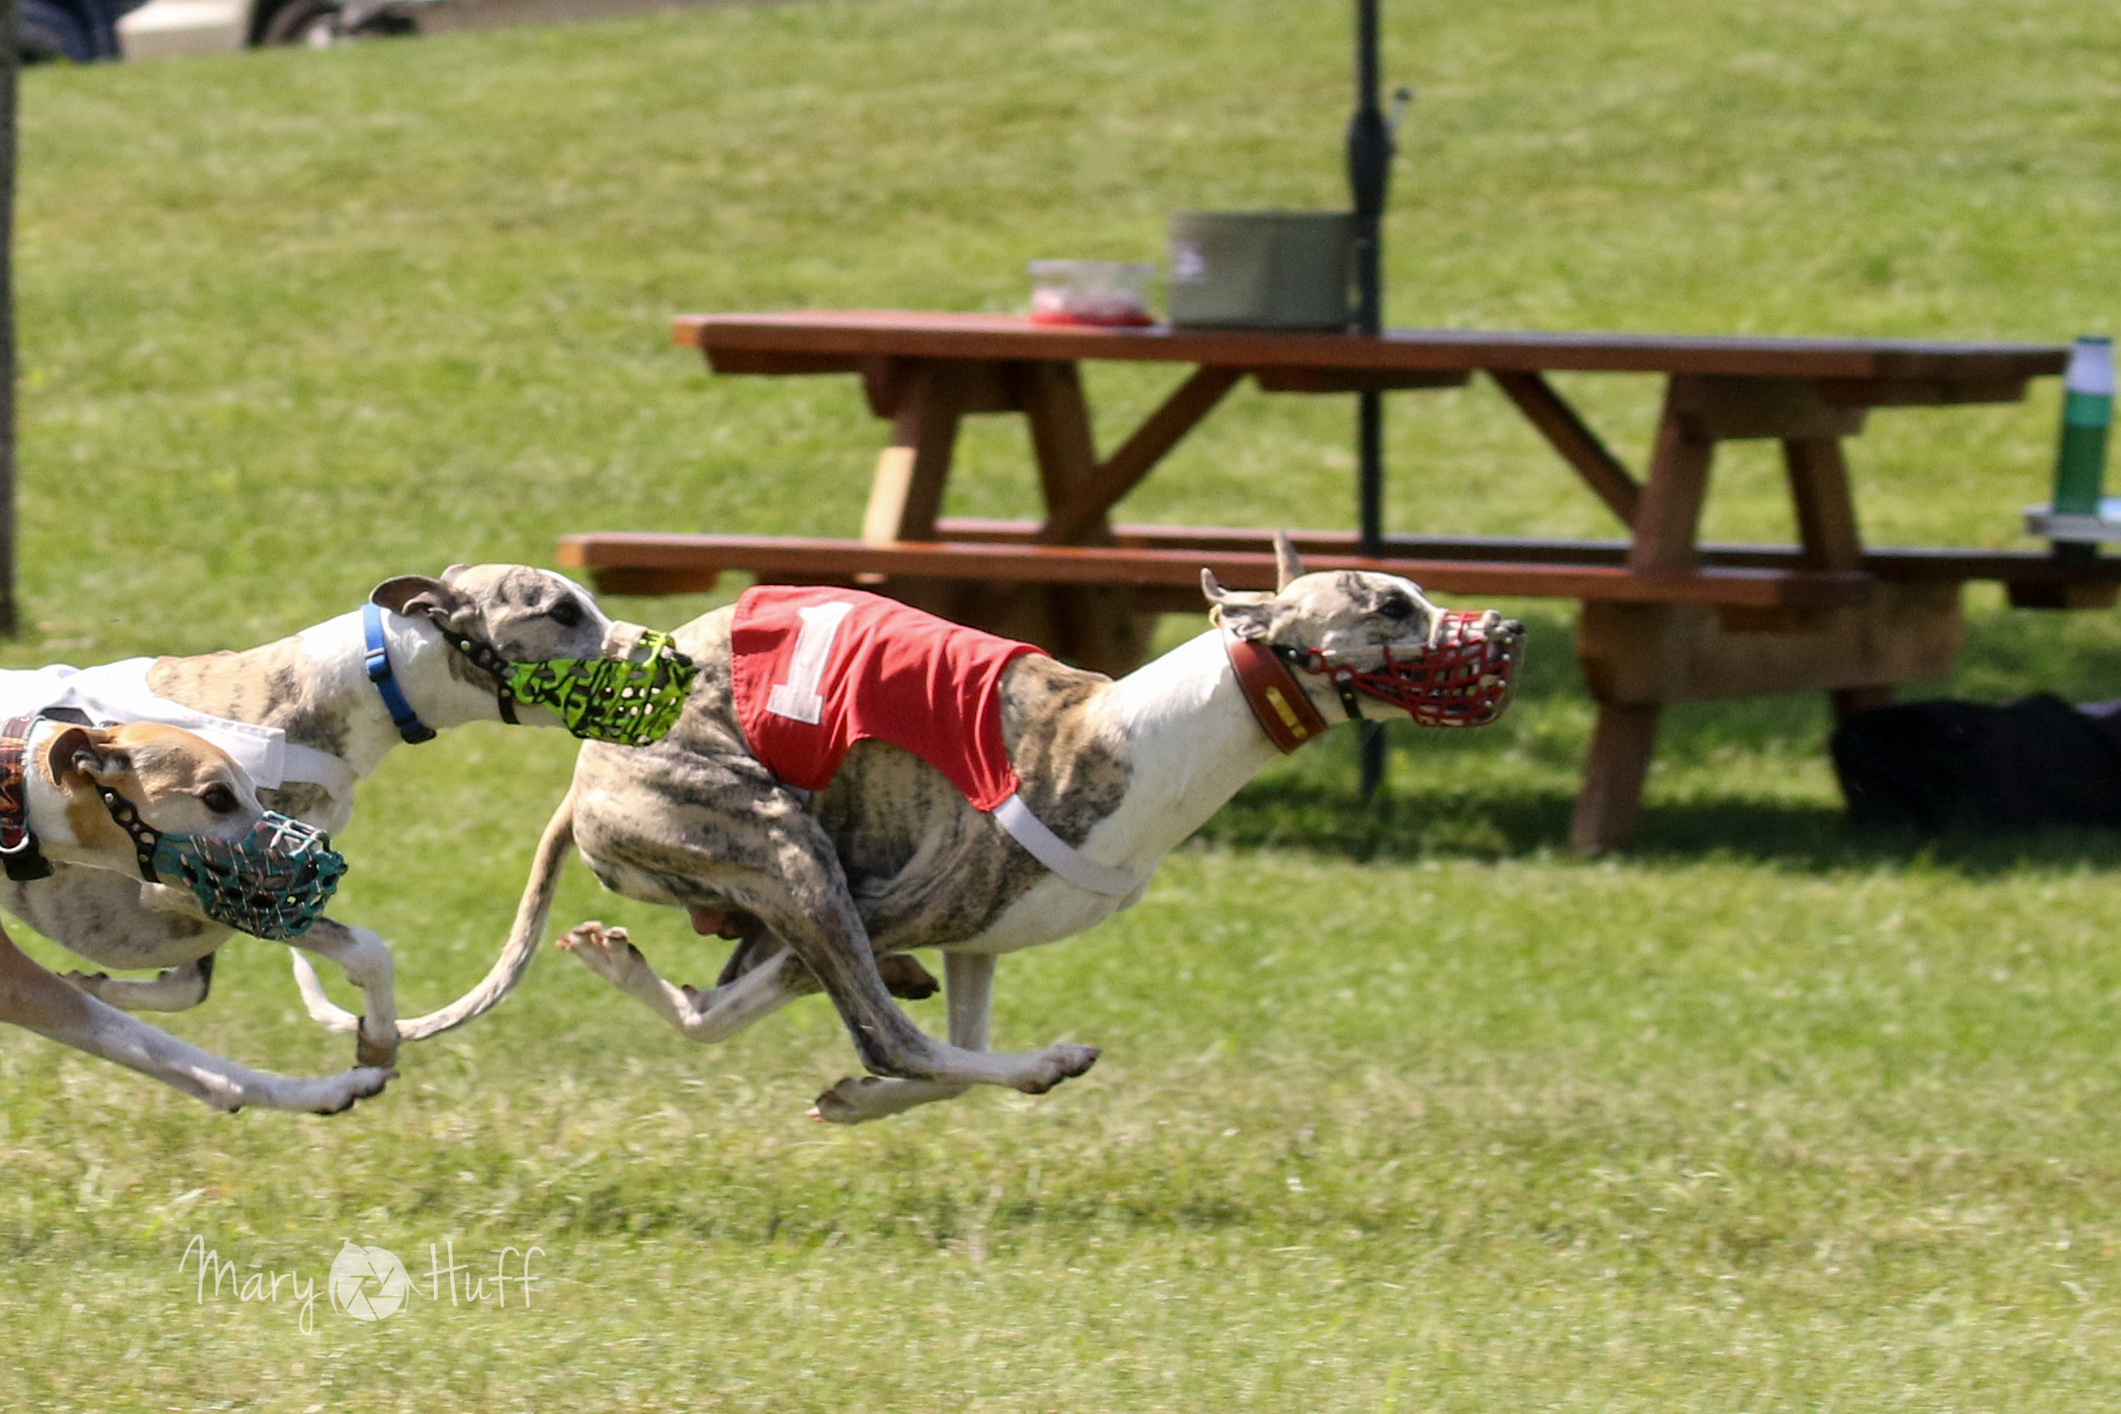 Whippet Events - conduct sanctioned matches, specialty shows, obedience trials, lure trials, and race meets